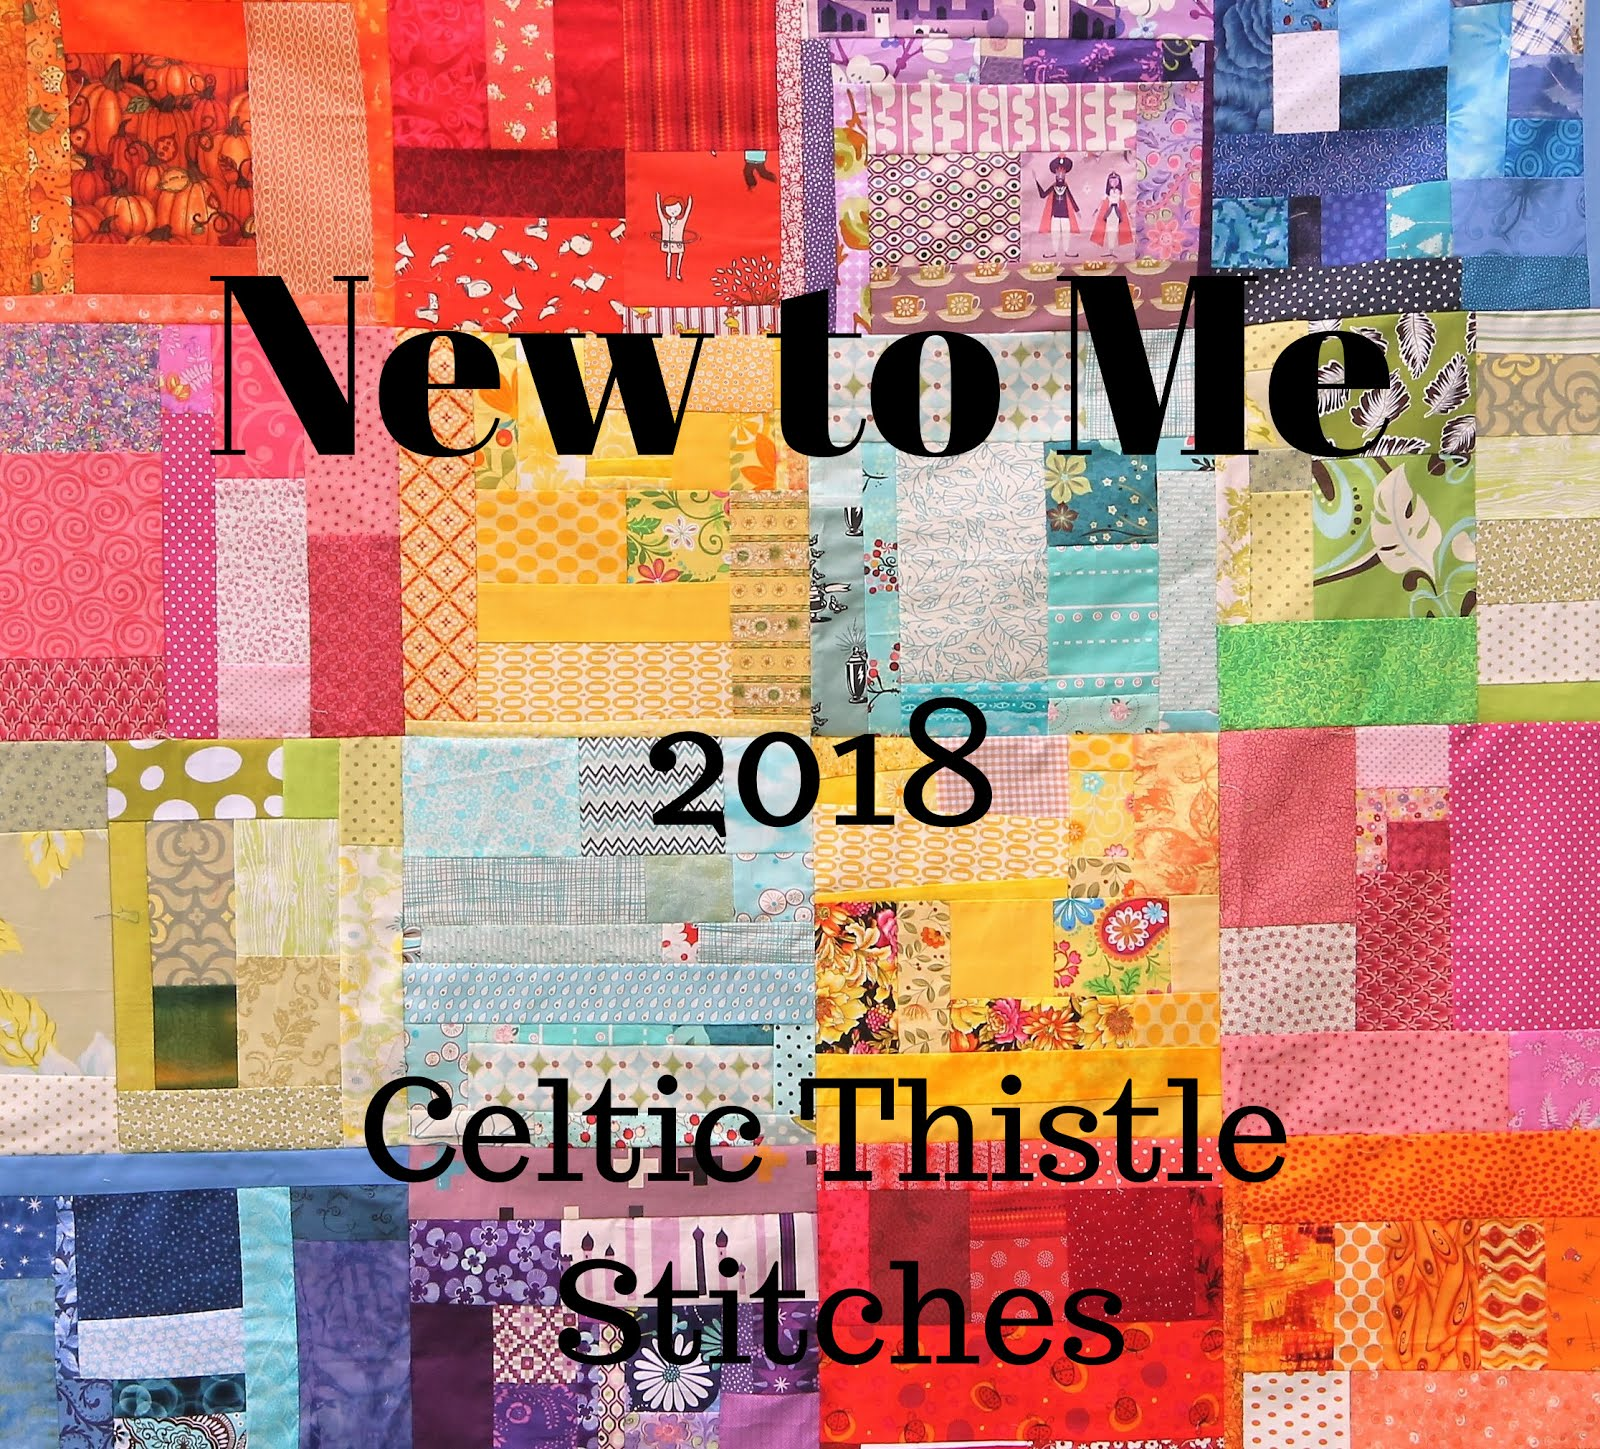 https://celticthistlestitches.blogspot.com/2018/08/getting-shirty.html?showComment=1535229926739#c2042371905419863617